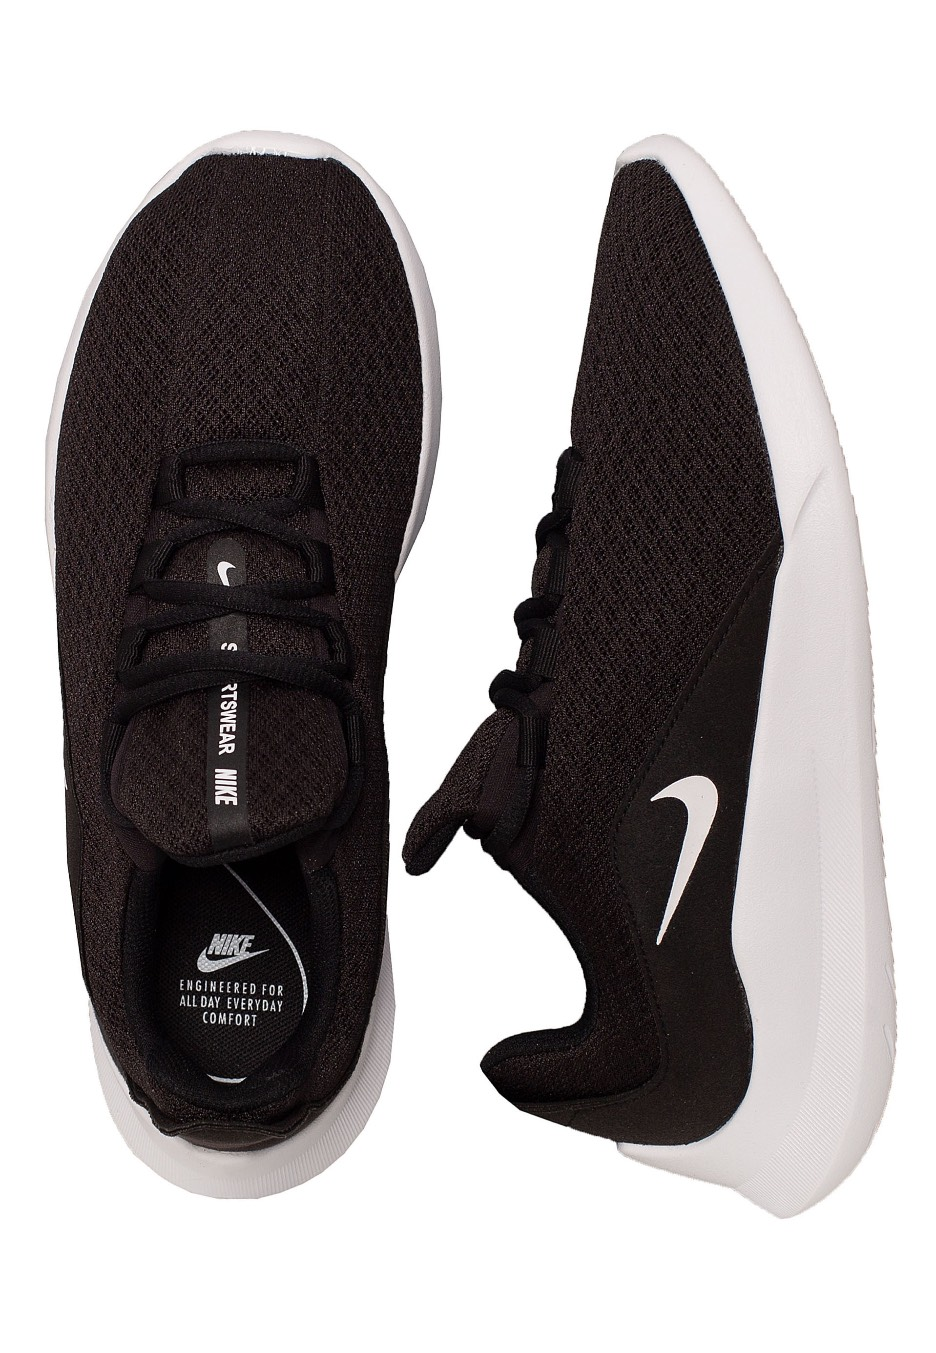 Marinero soldadura título  Nike - Viale Black/White - Girl Shoes - Fashion Shop - Impericon.com UK